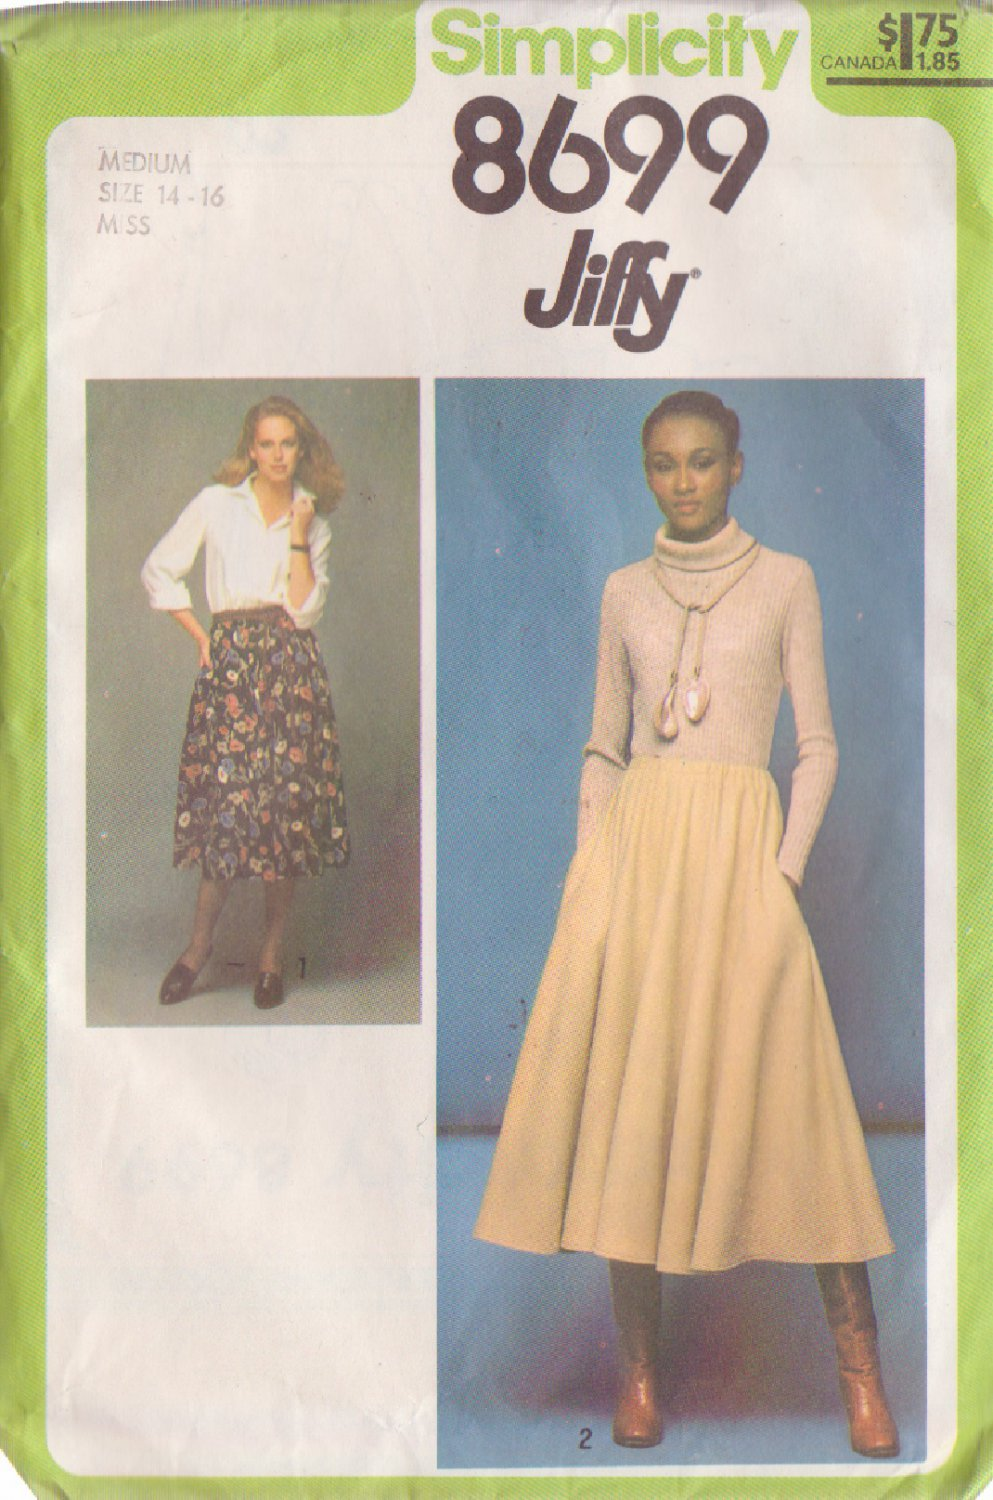 SIMPLICITY PATTERN 8699 SIZE MEDIUM MISSES' JIFFY SKIRT IN 2 LENGTHS 14/16